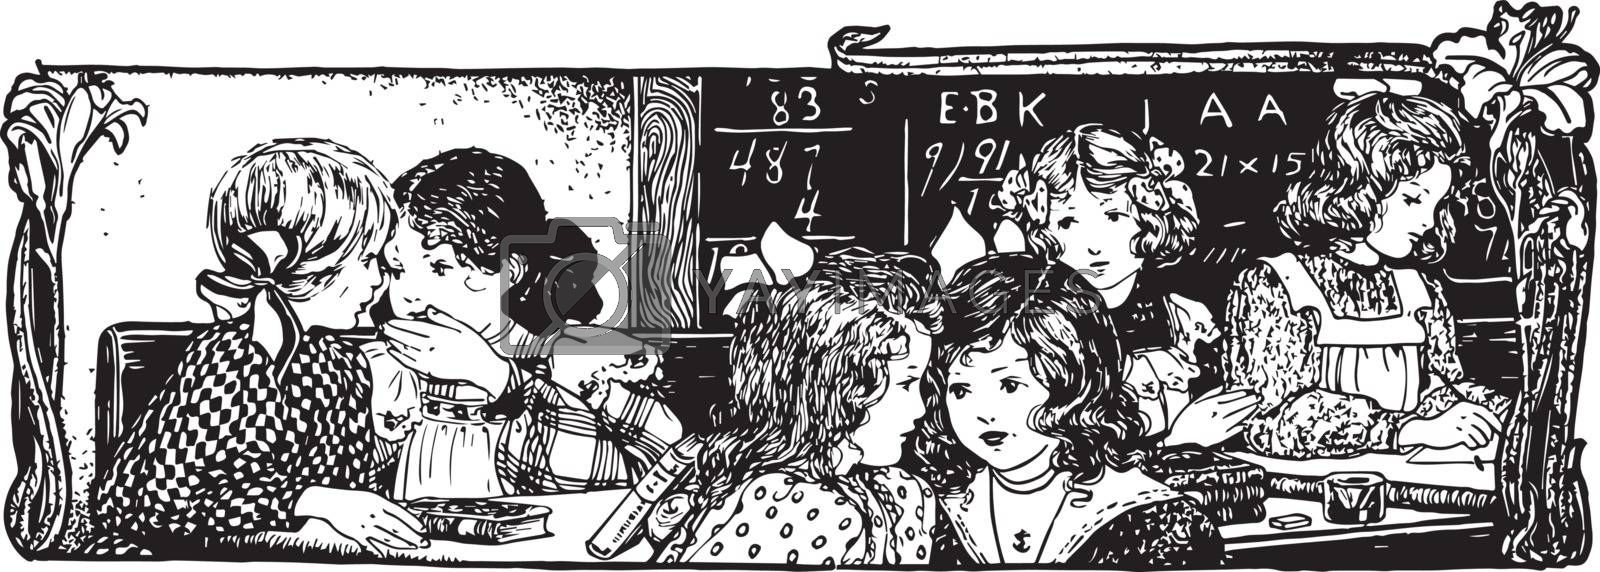 Classroom or telling secrets, vintage engraving. by Morphart